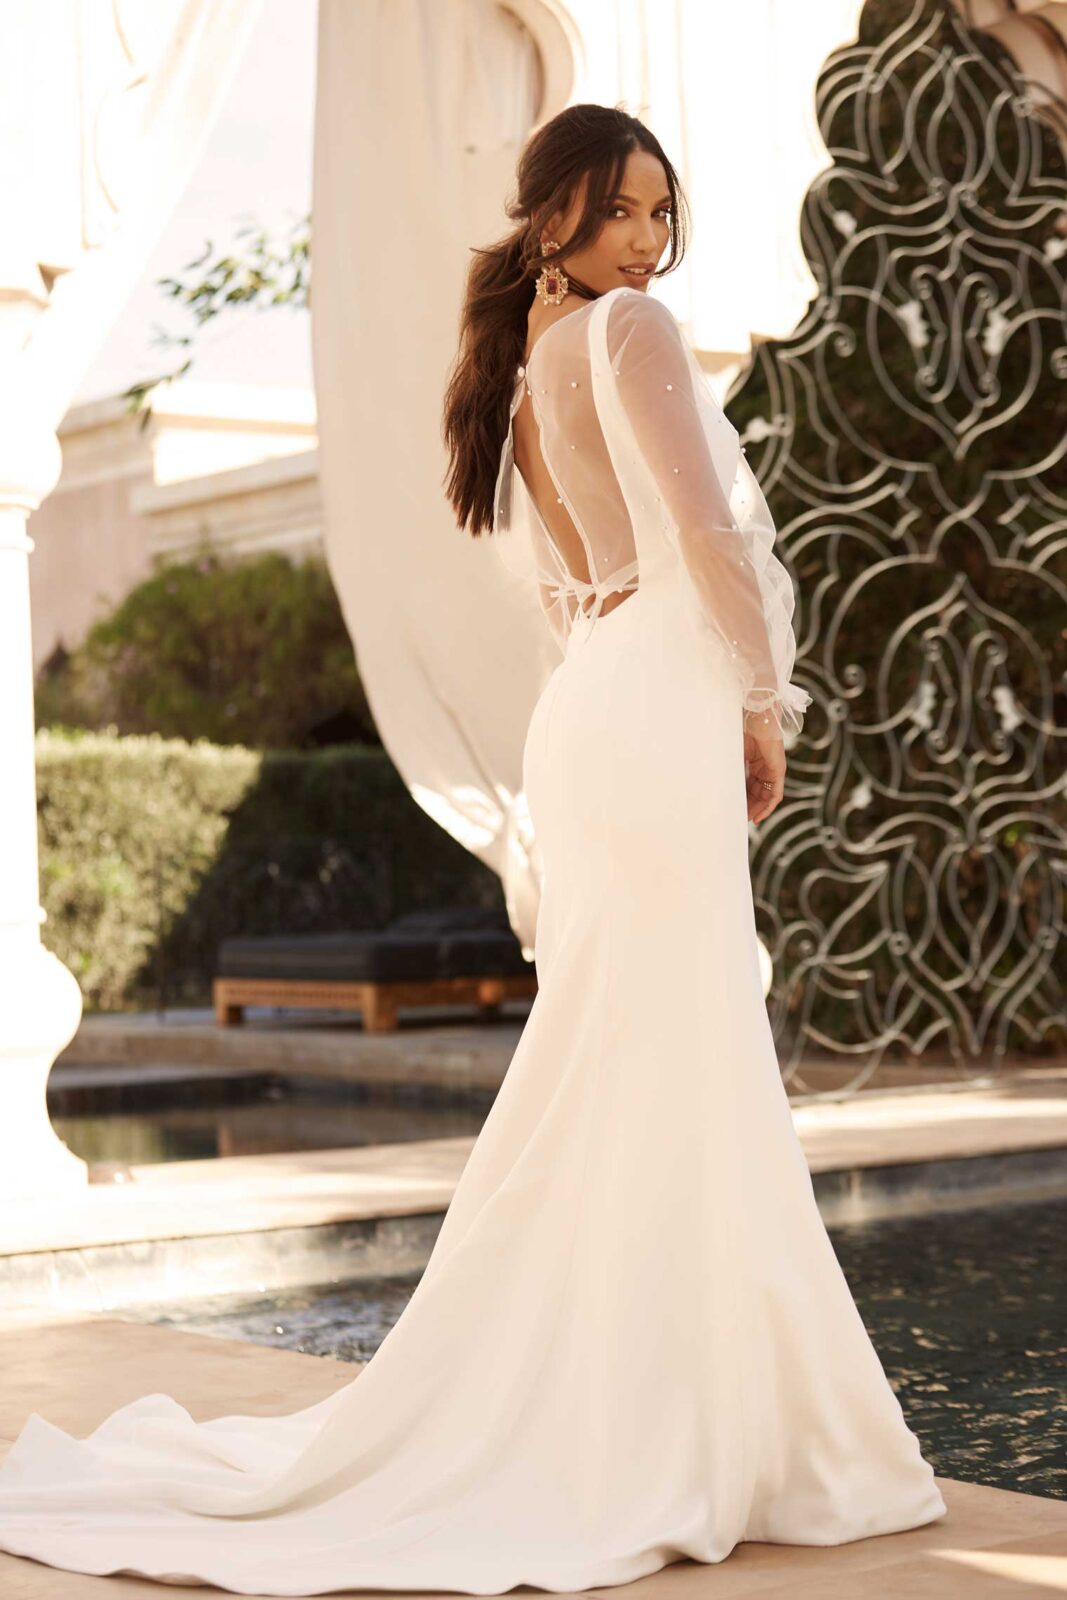 AIDEN-ML16113-FULL-LENGTH-FITTED-CREPE-GOWN-LOW-BACK-WITH-ZIP-CLOSURE-AND-DETACHABLE-JACKET-WEDDING-DRESS-MADI-LANE-BRIDAL3